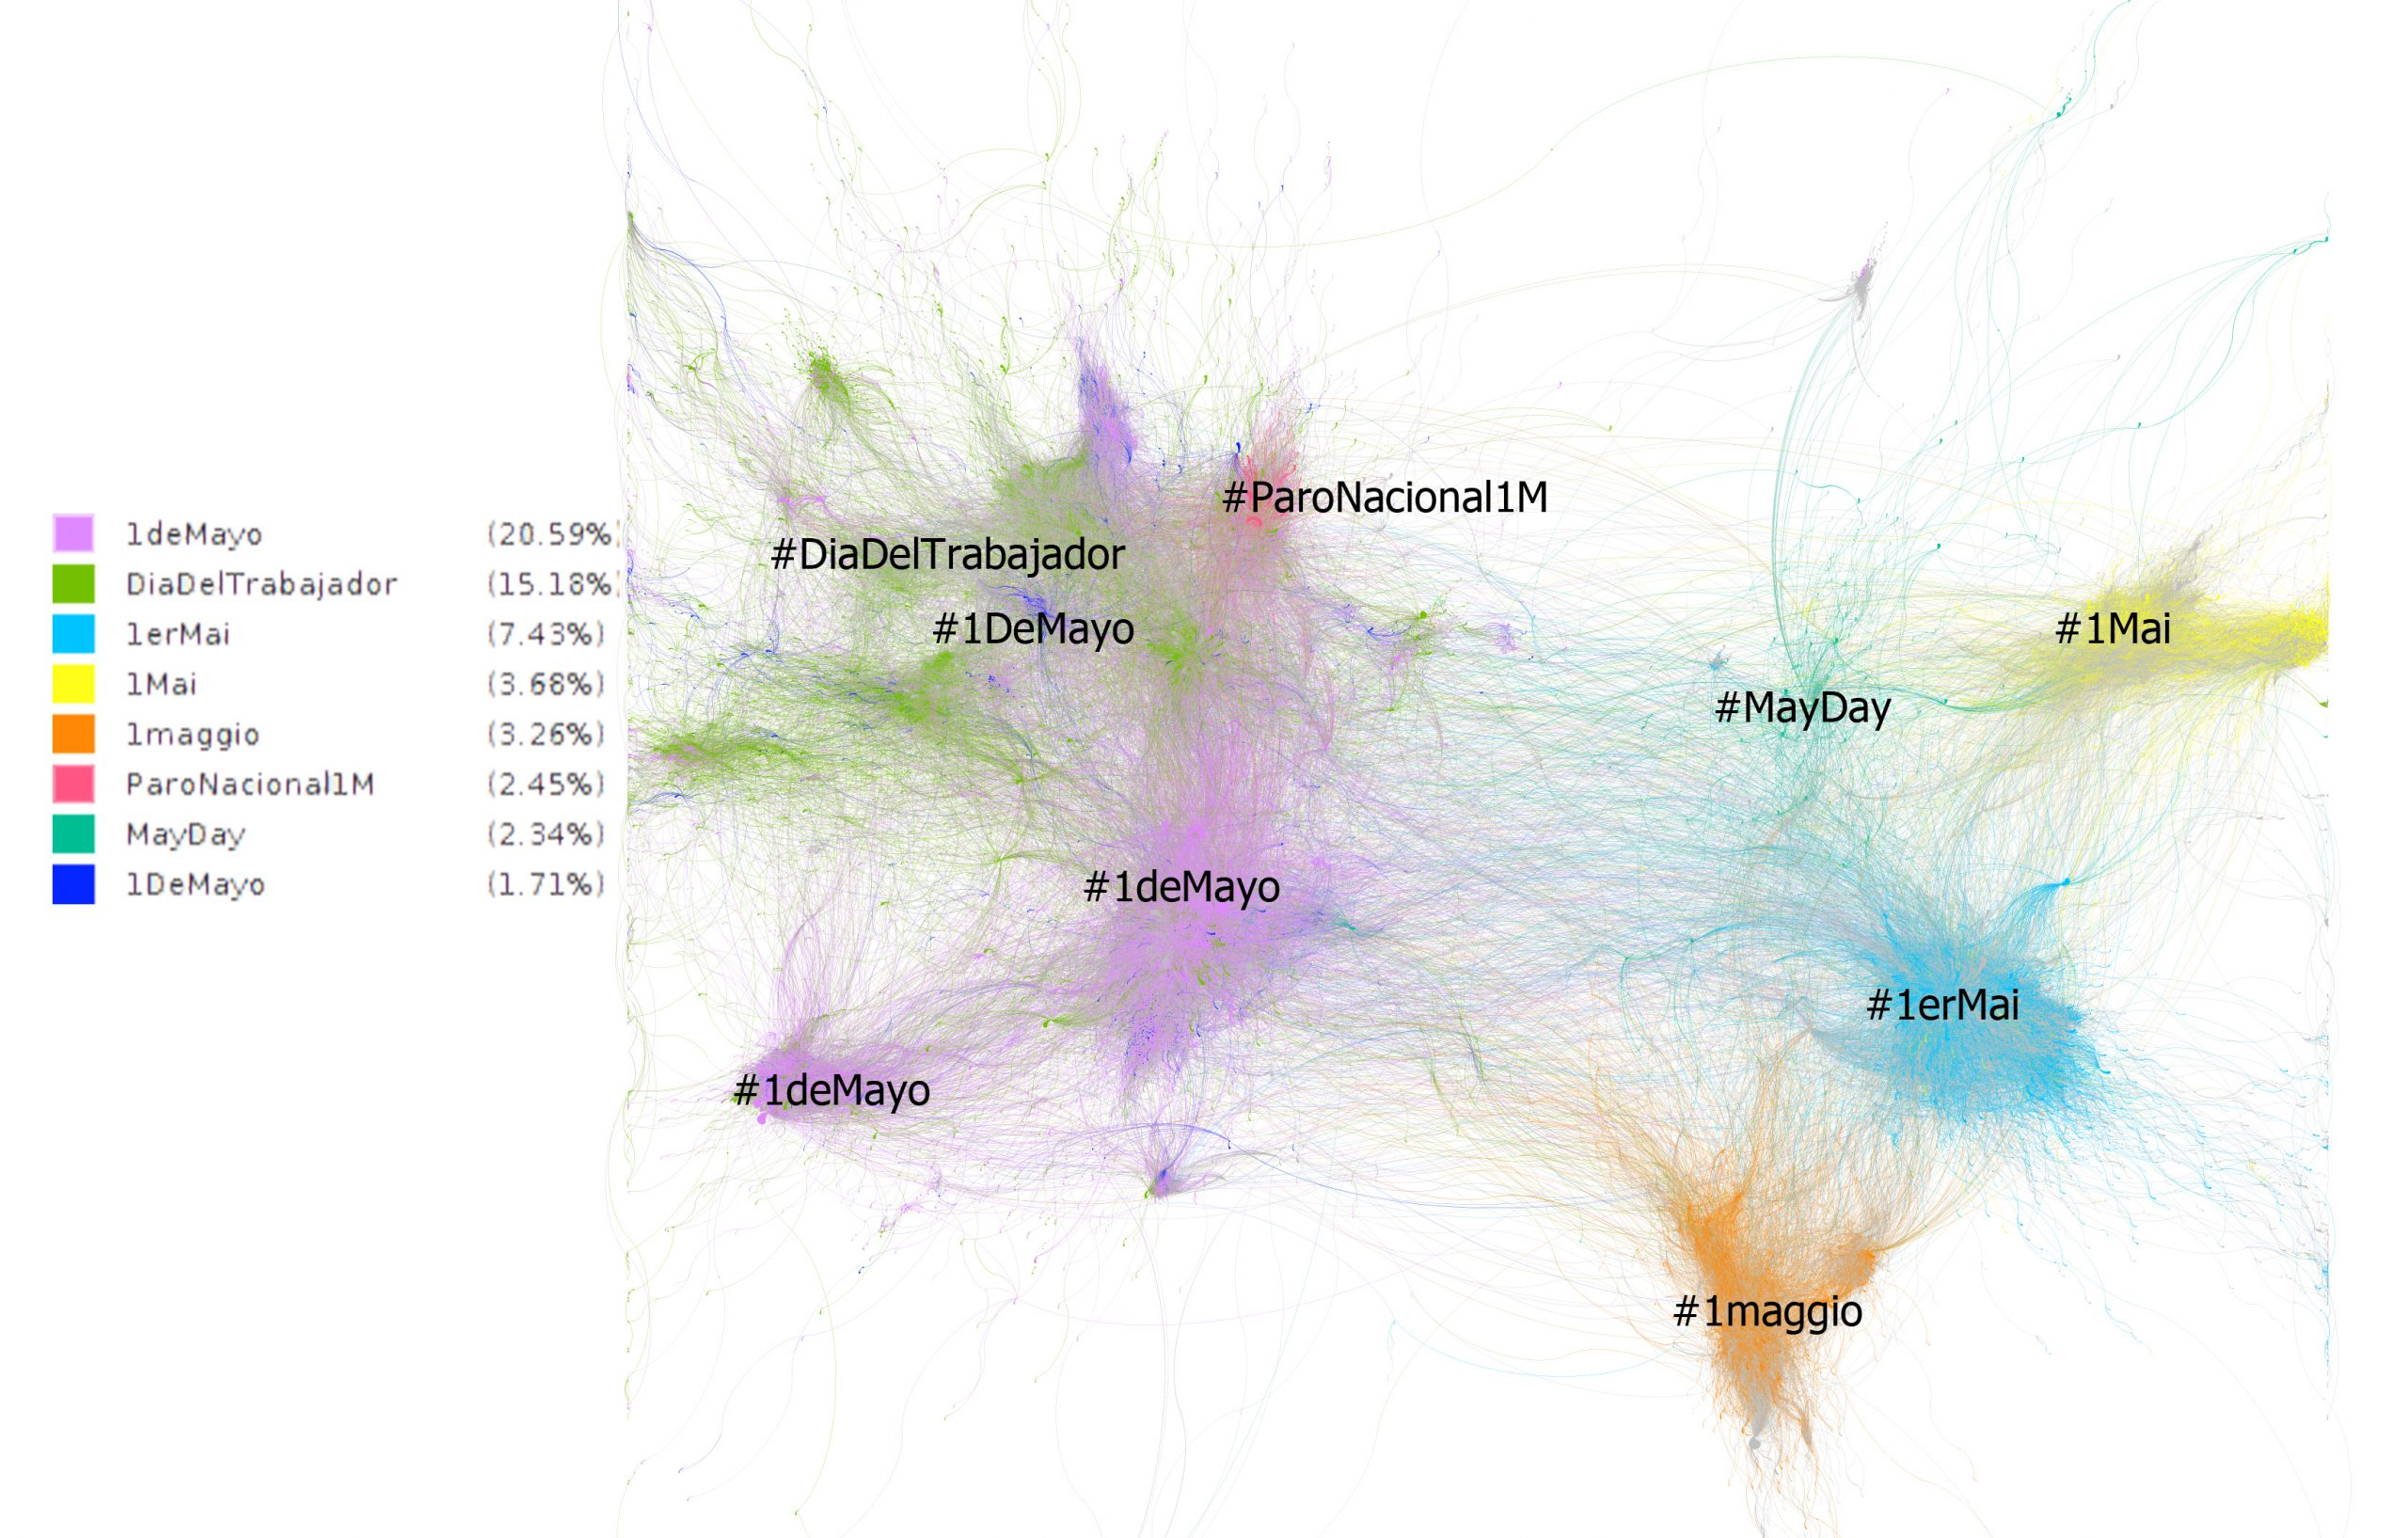 GRAPH 3. ON RTS BY HASHTAGS